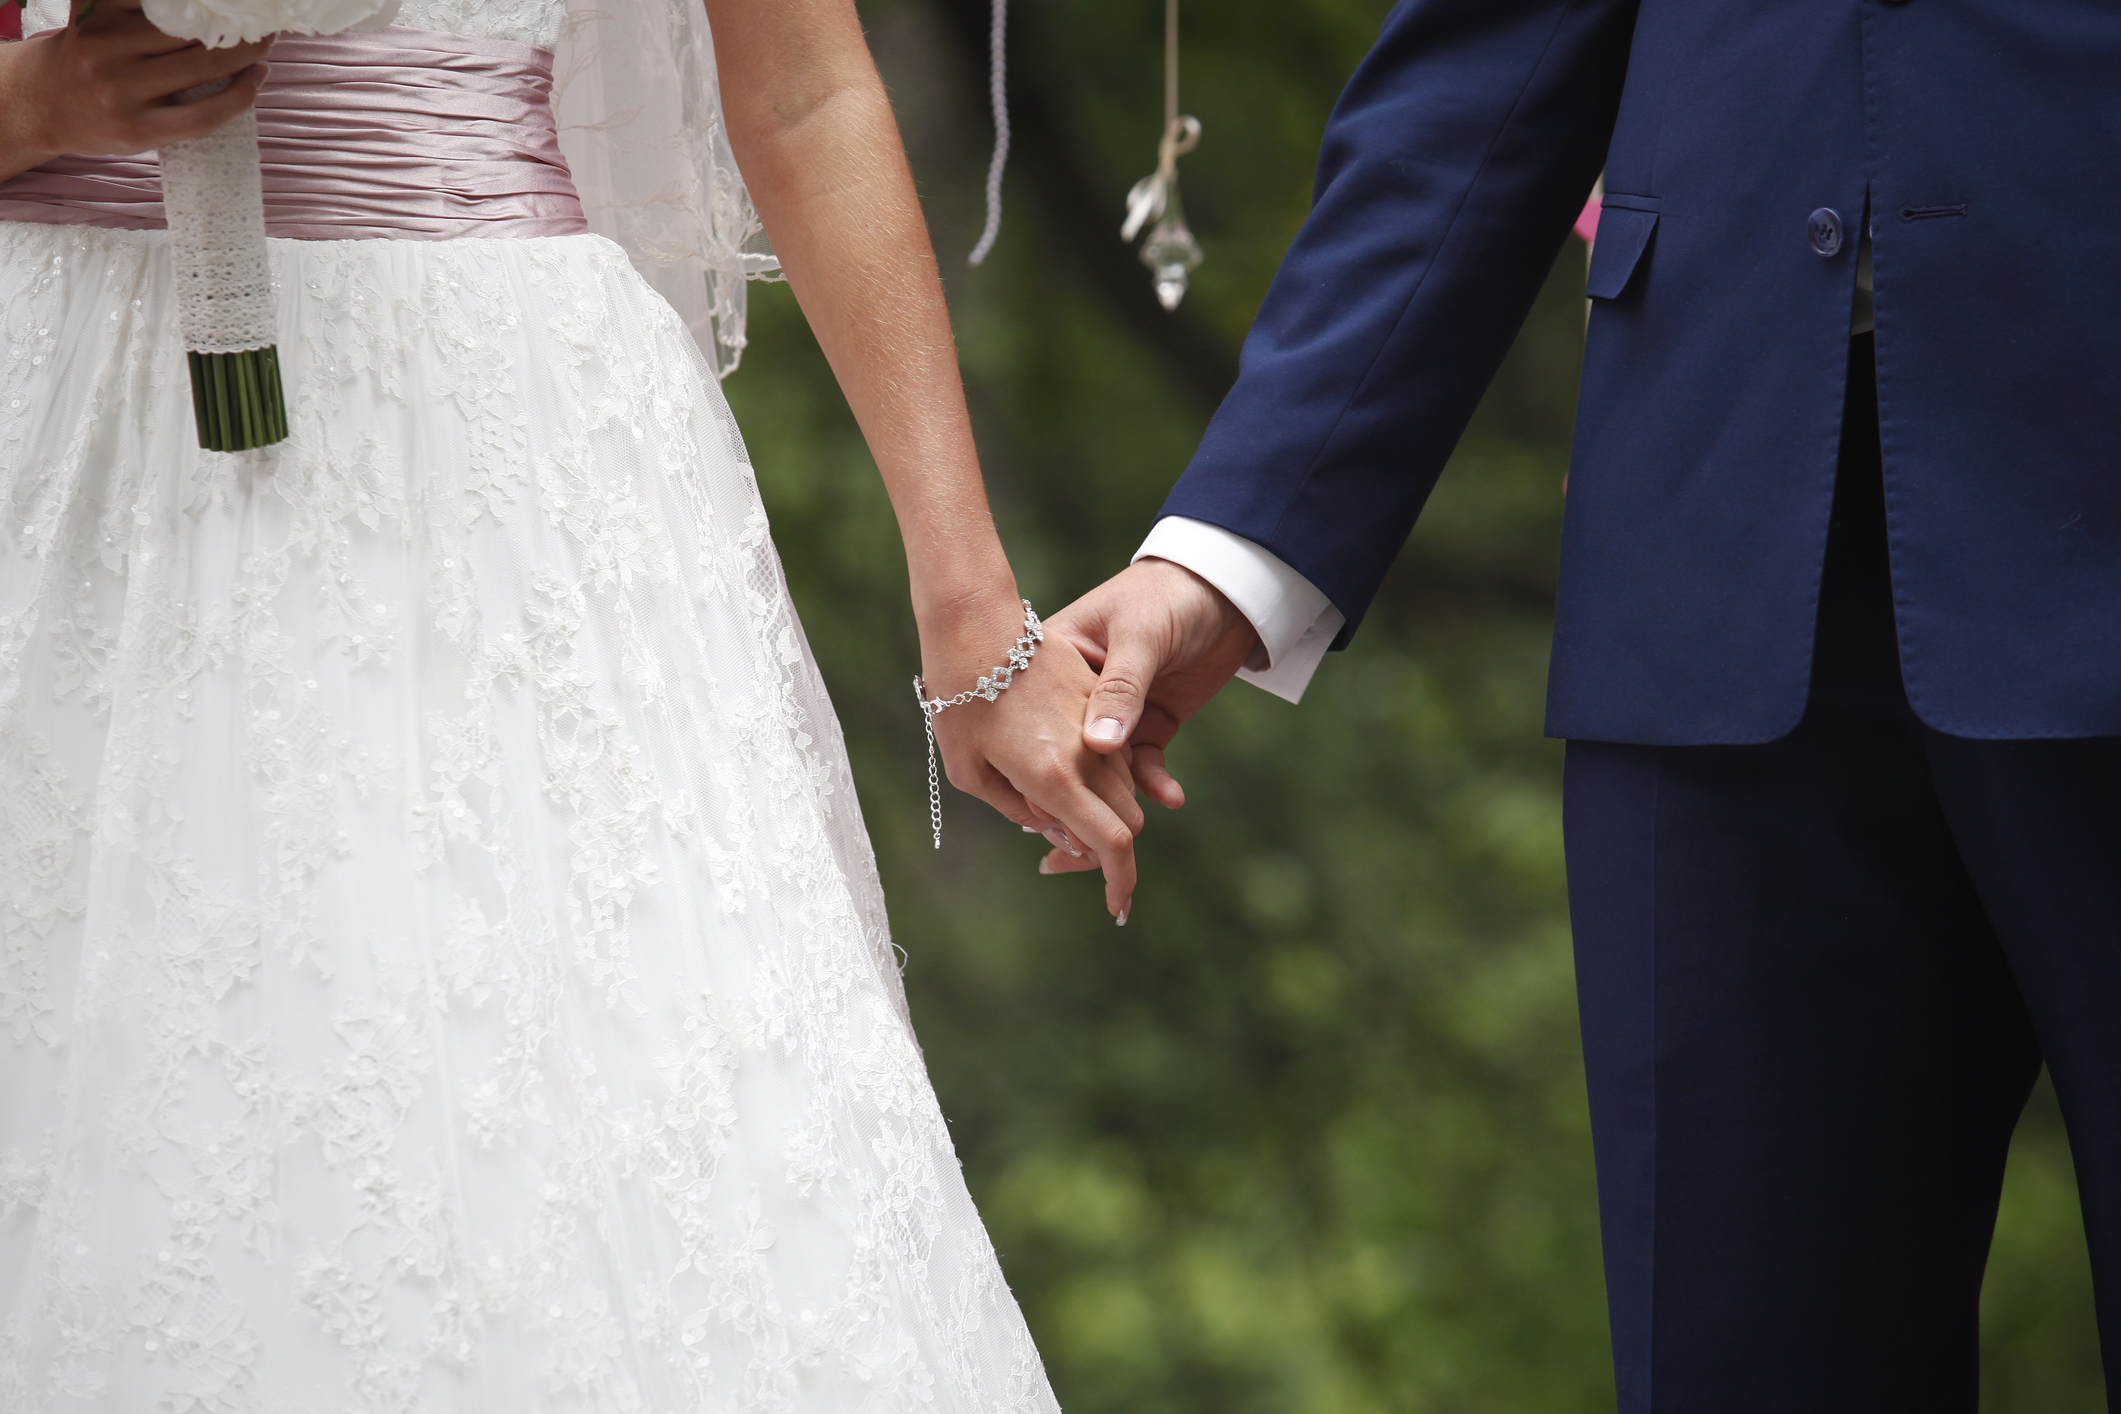 Validity of a prenup